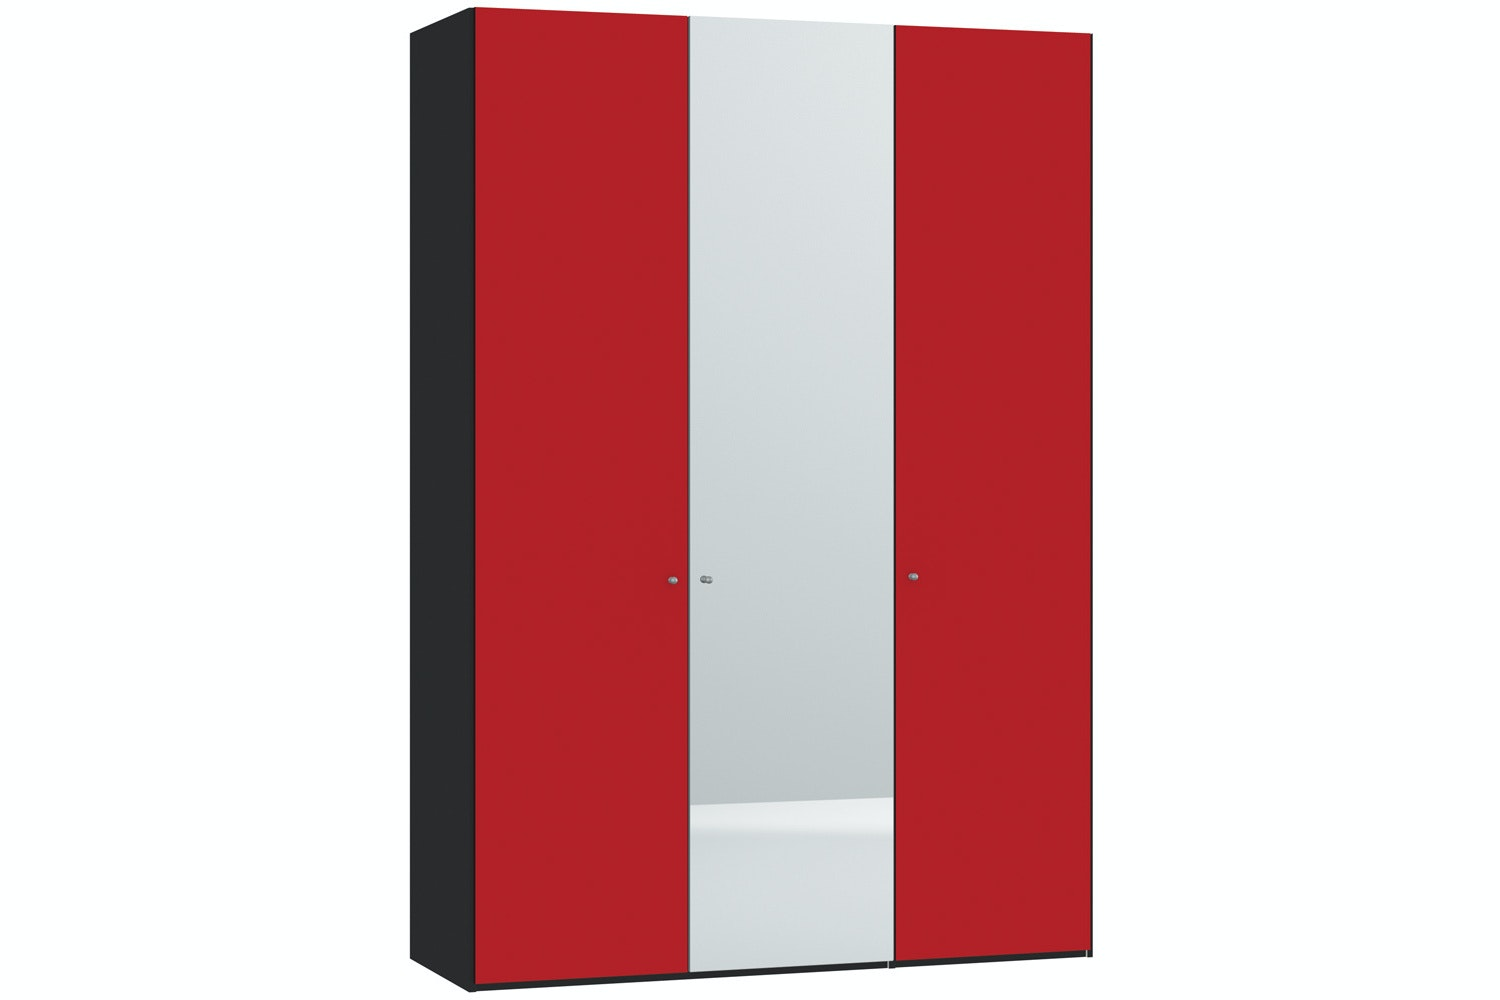 Skye Hinged 3 Door Wardrobe 152Cm | Red Glass Matt + Mirror